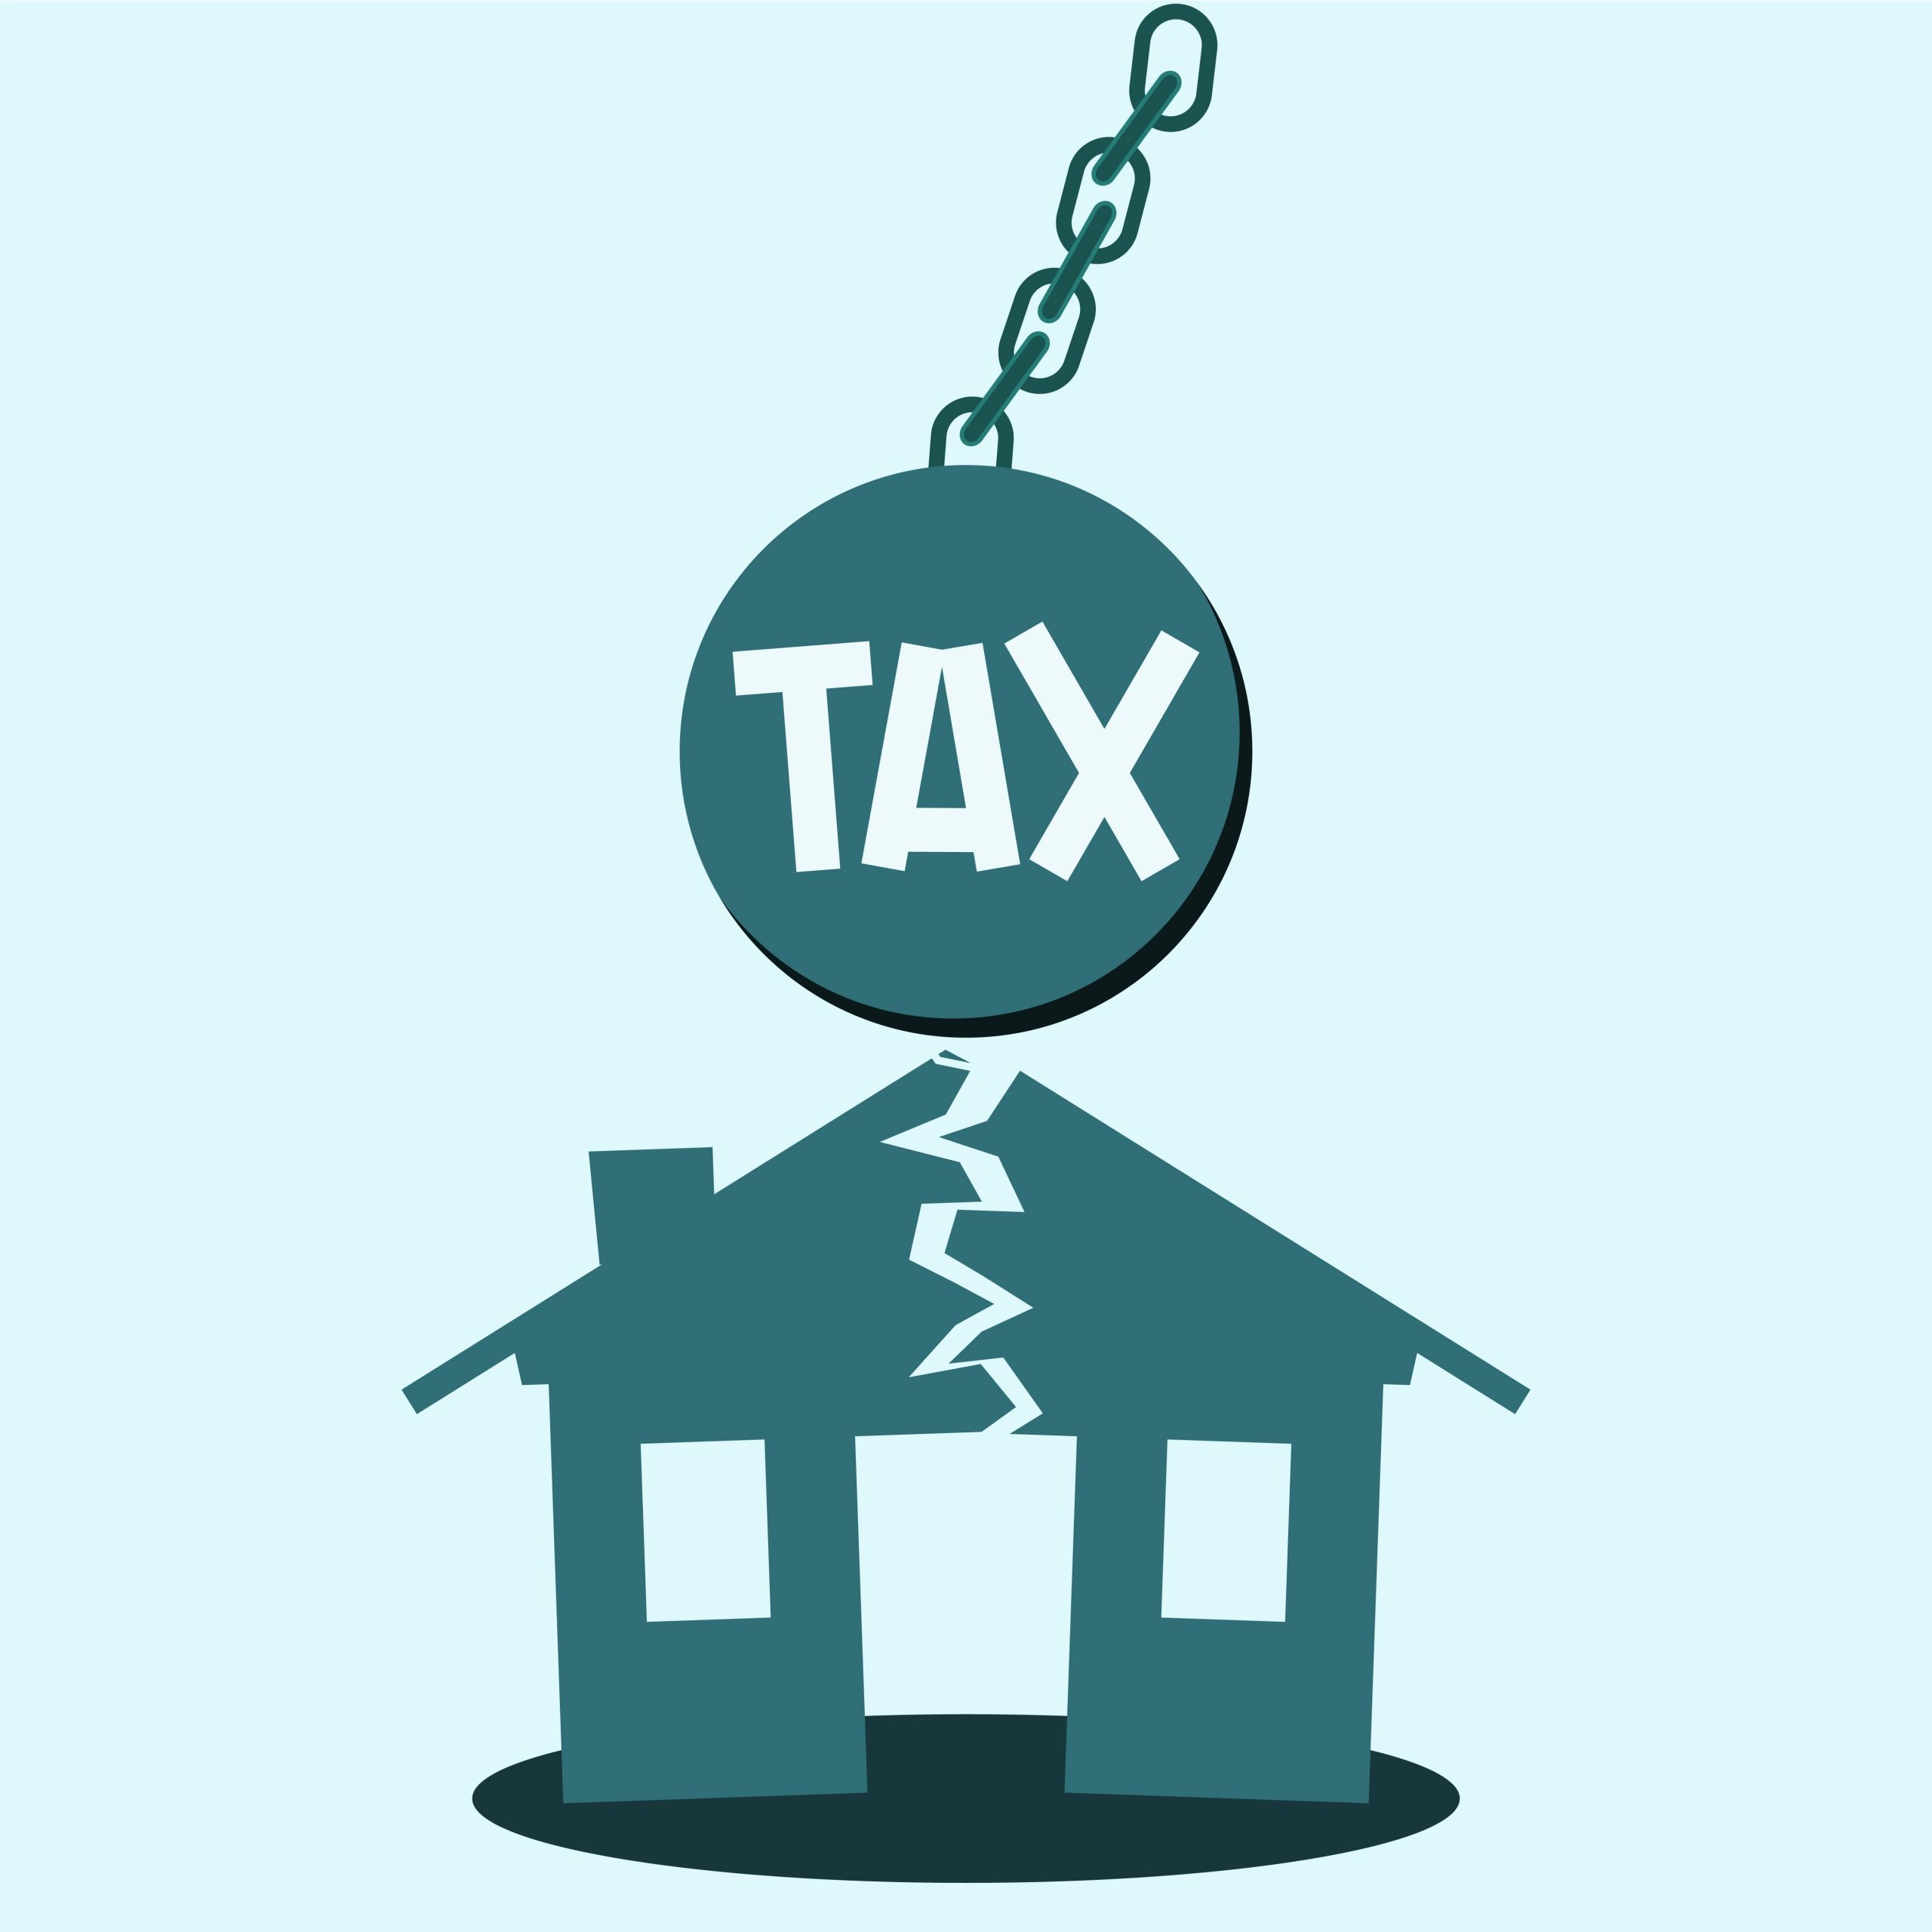 How to remove a tax lien